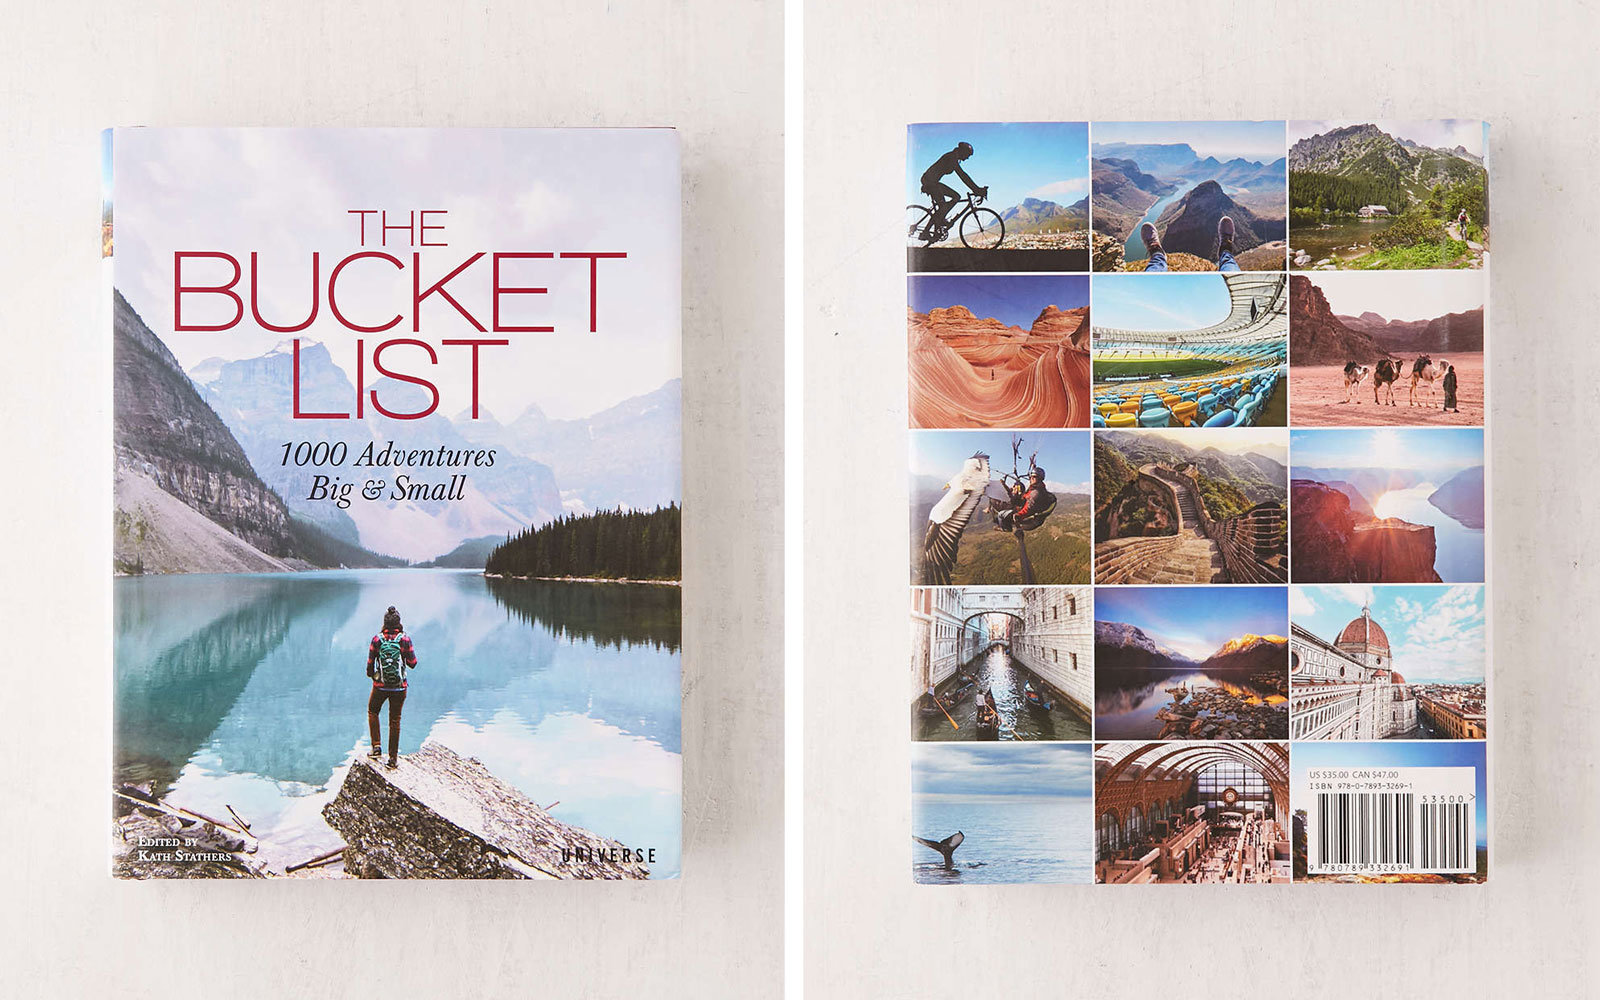 33. 'The Bucket List' Photo Book